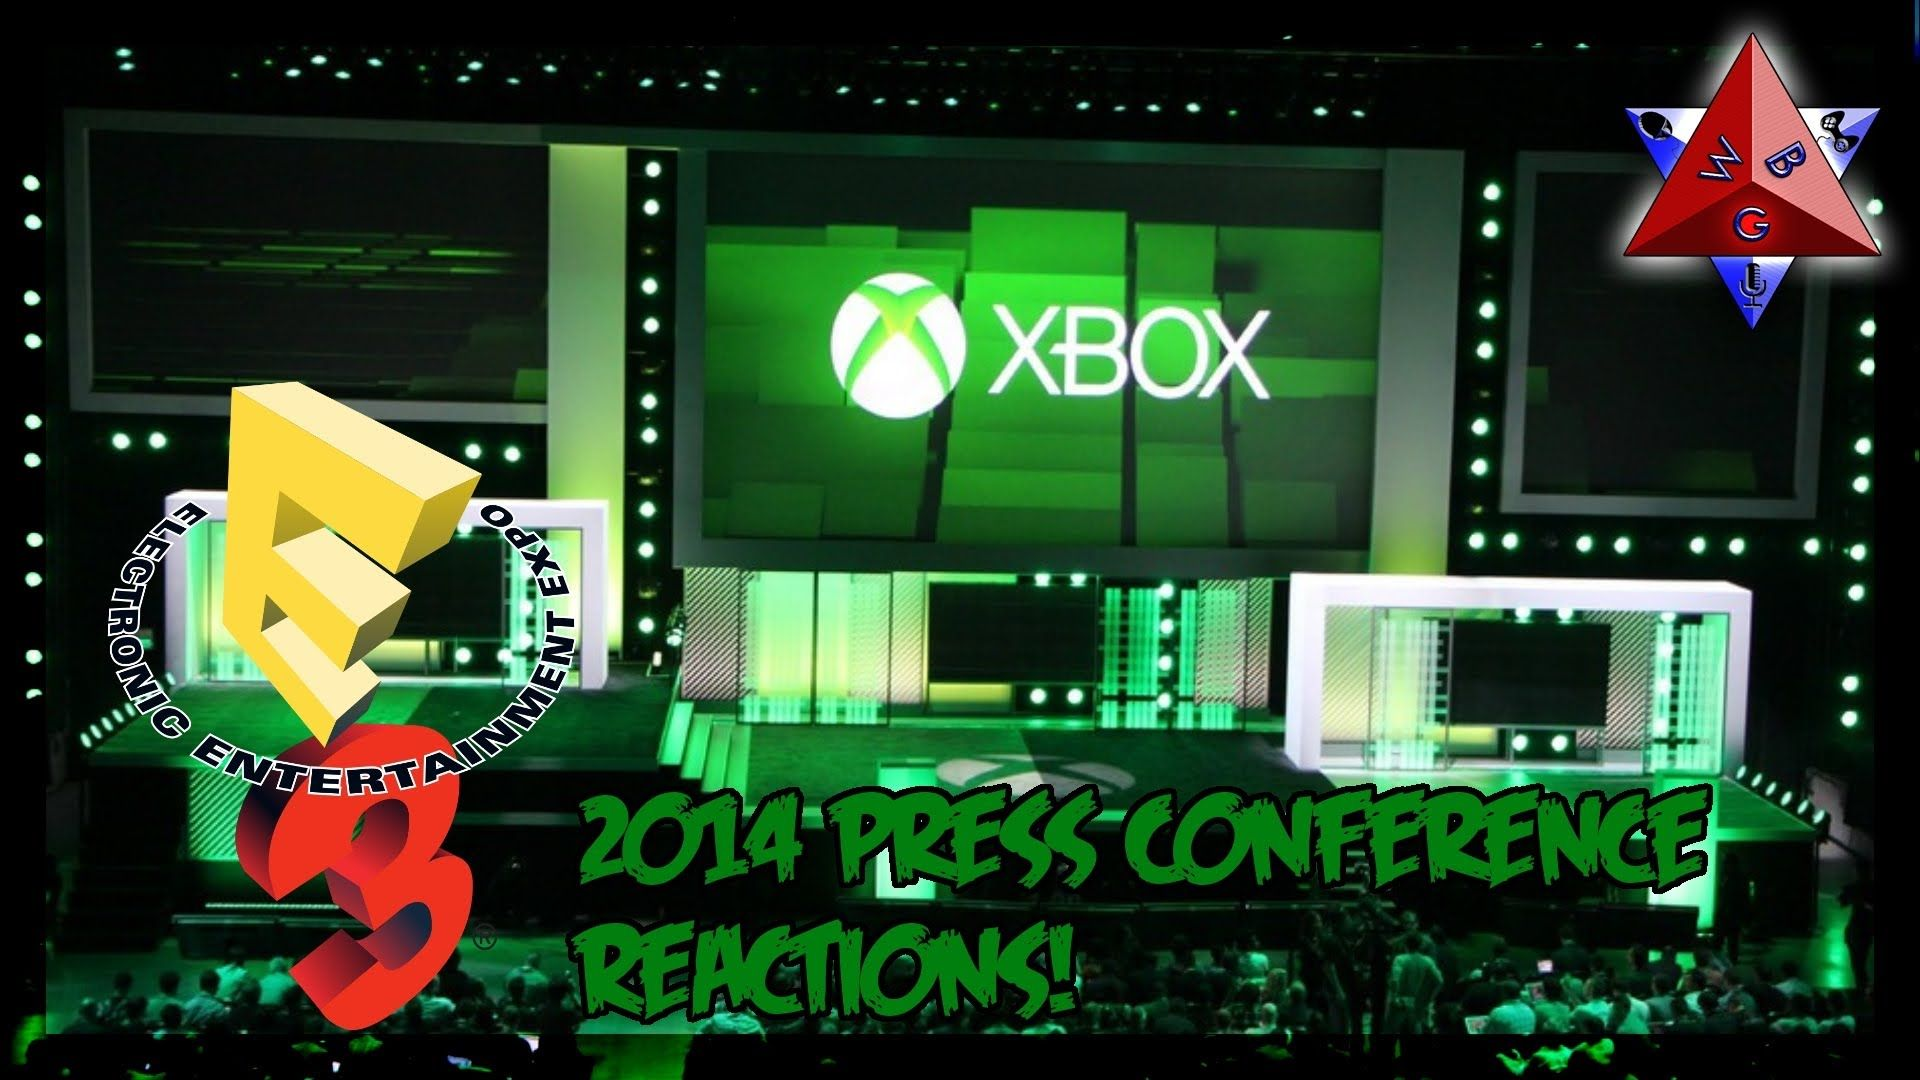 29++ Pros and cons of video games conclusion ideas in 2021